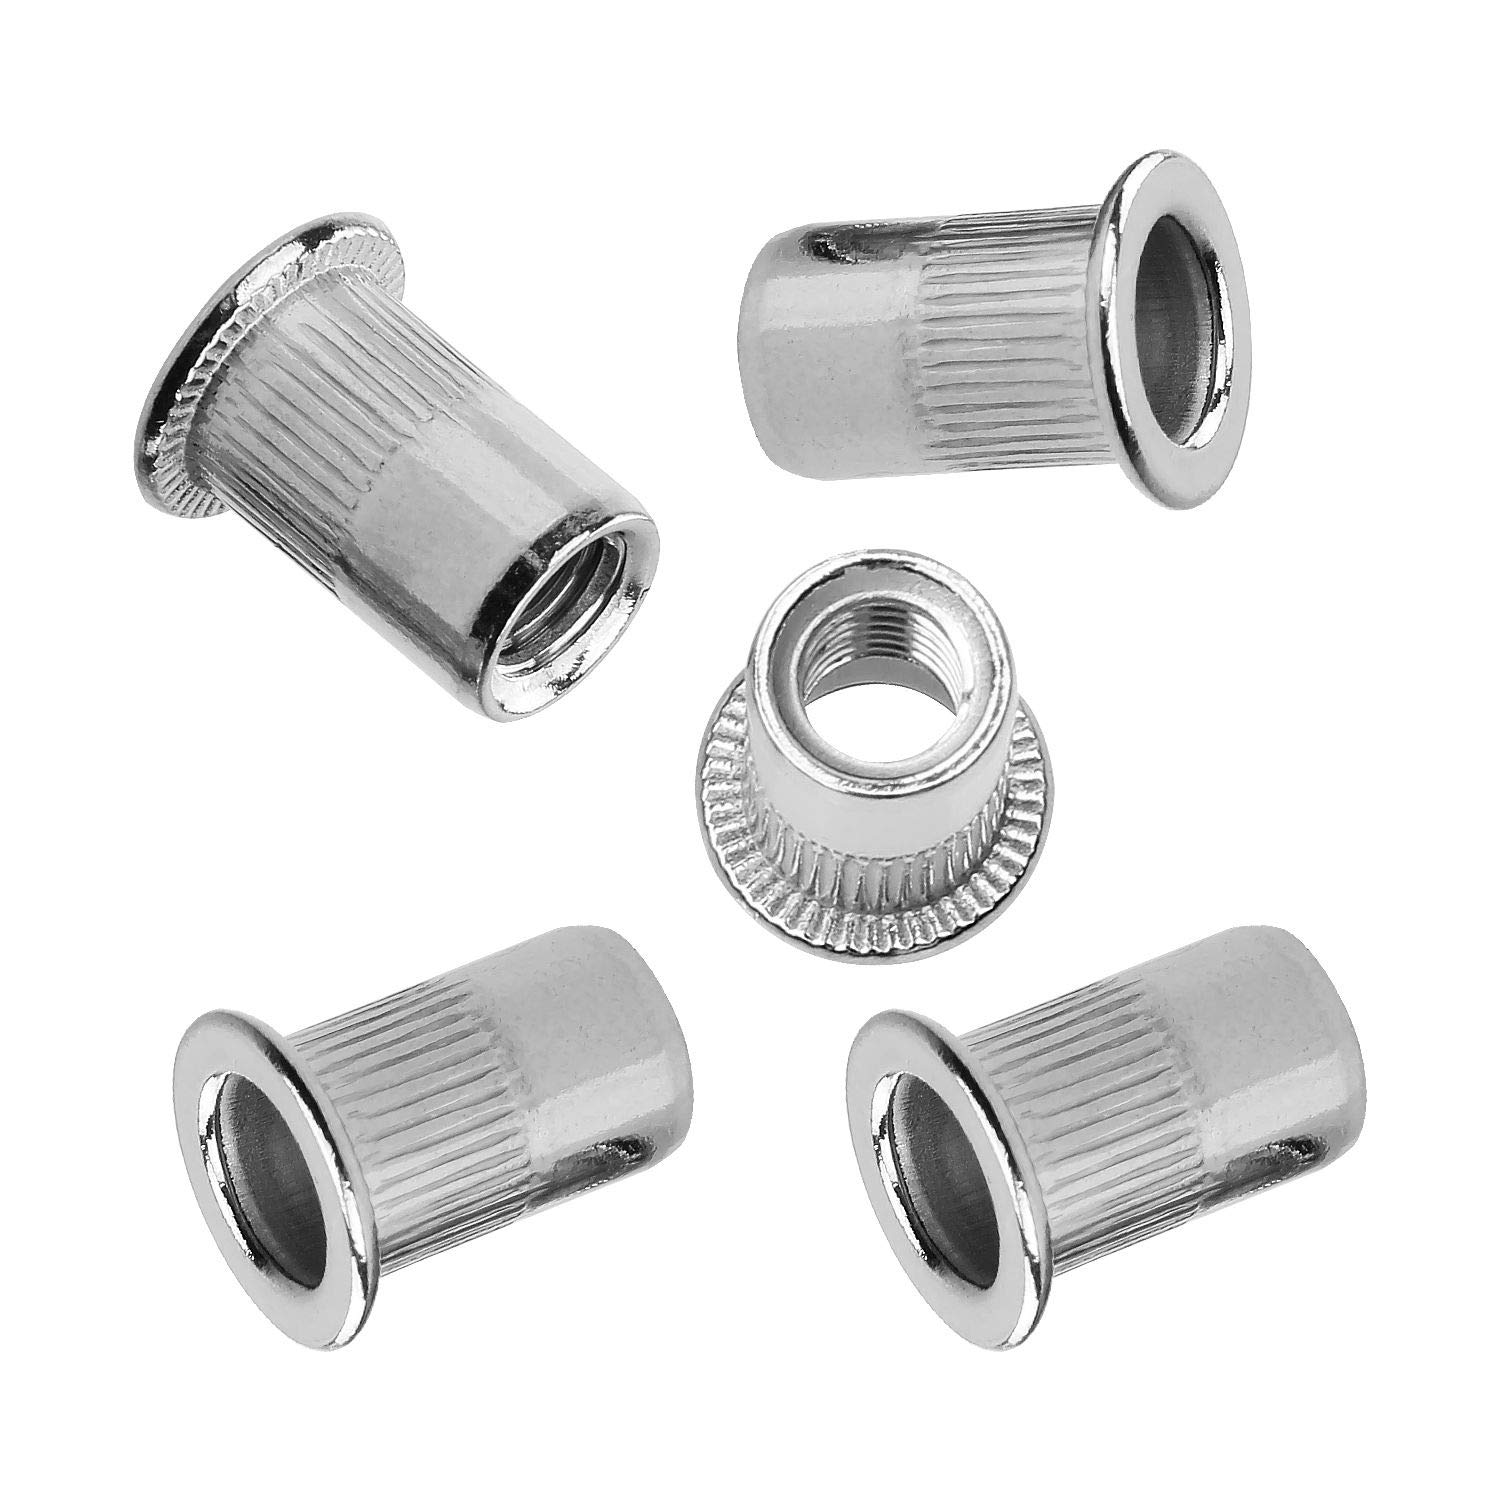 14MM Head Dia. 7MM Head Ht. 303 Stainless QTY-10 M8 X 1.25 Thread UNICORP MSCB551-2 Hex Socket Shoulder Screw- 10MM Shoulder Dia. 10MM Shoulder Lg.